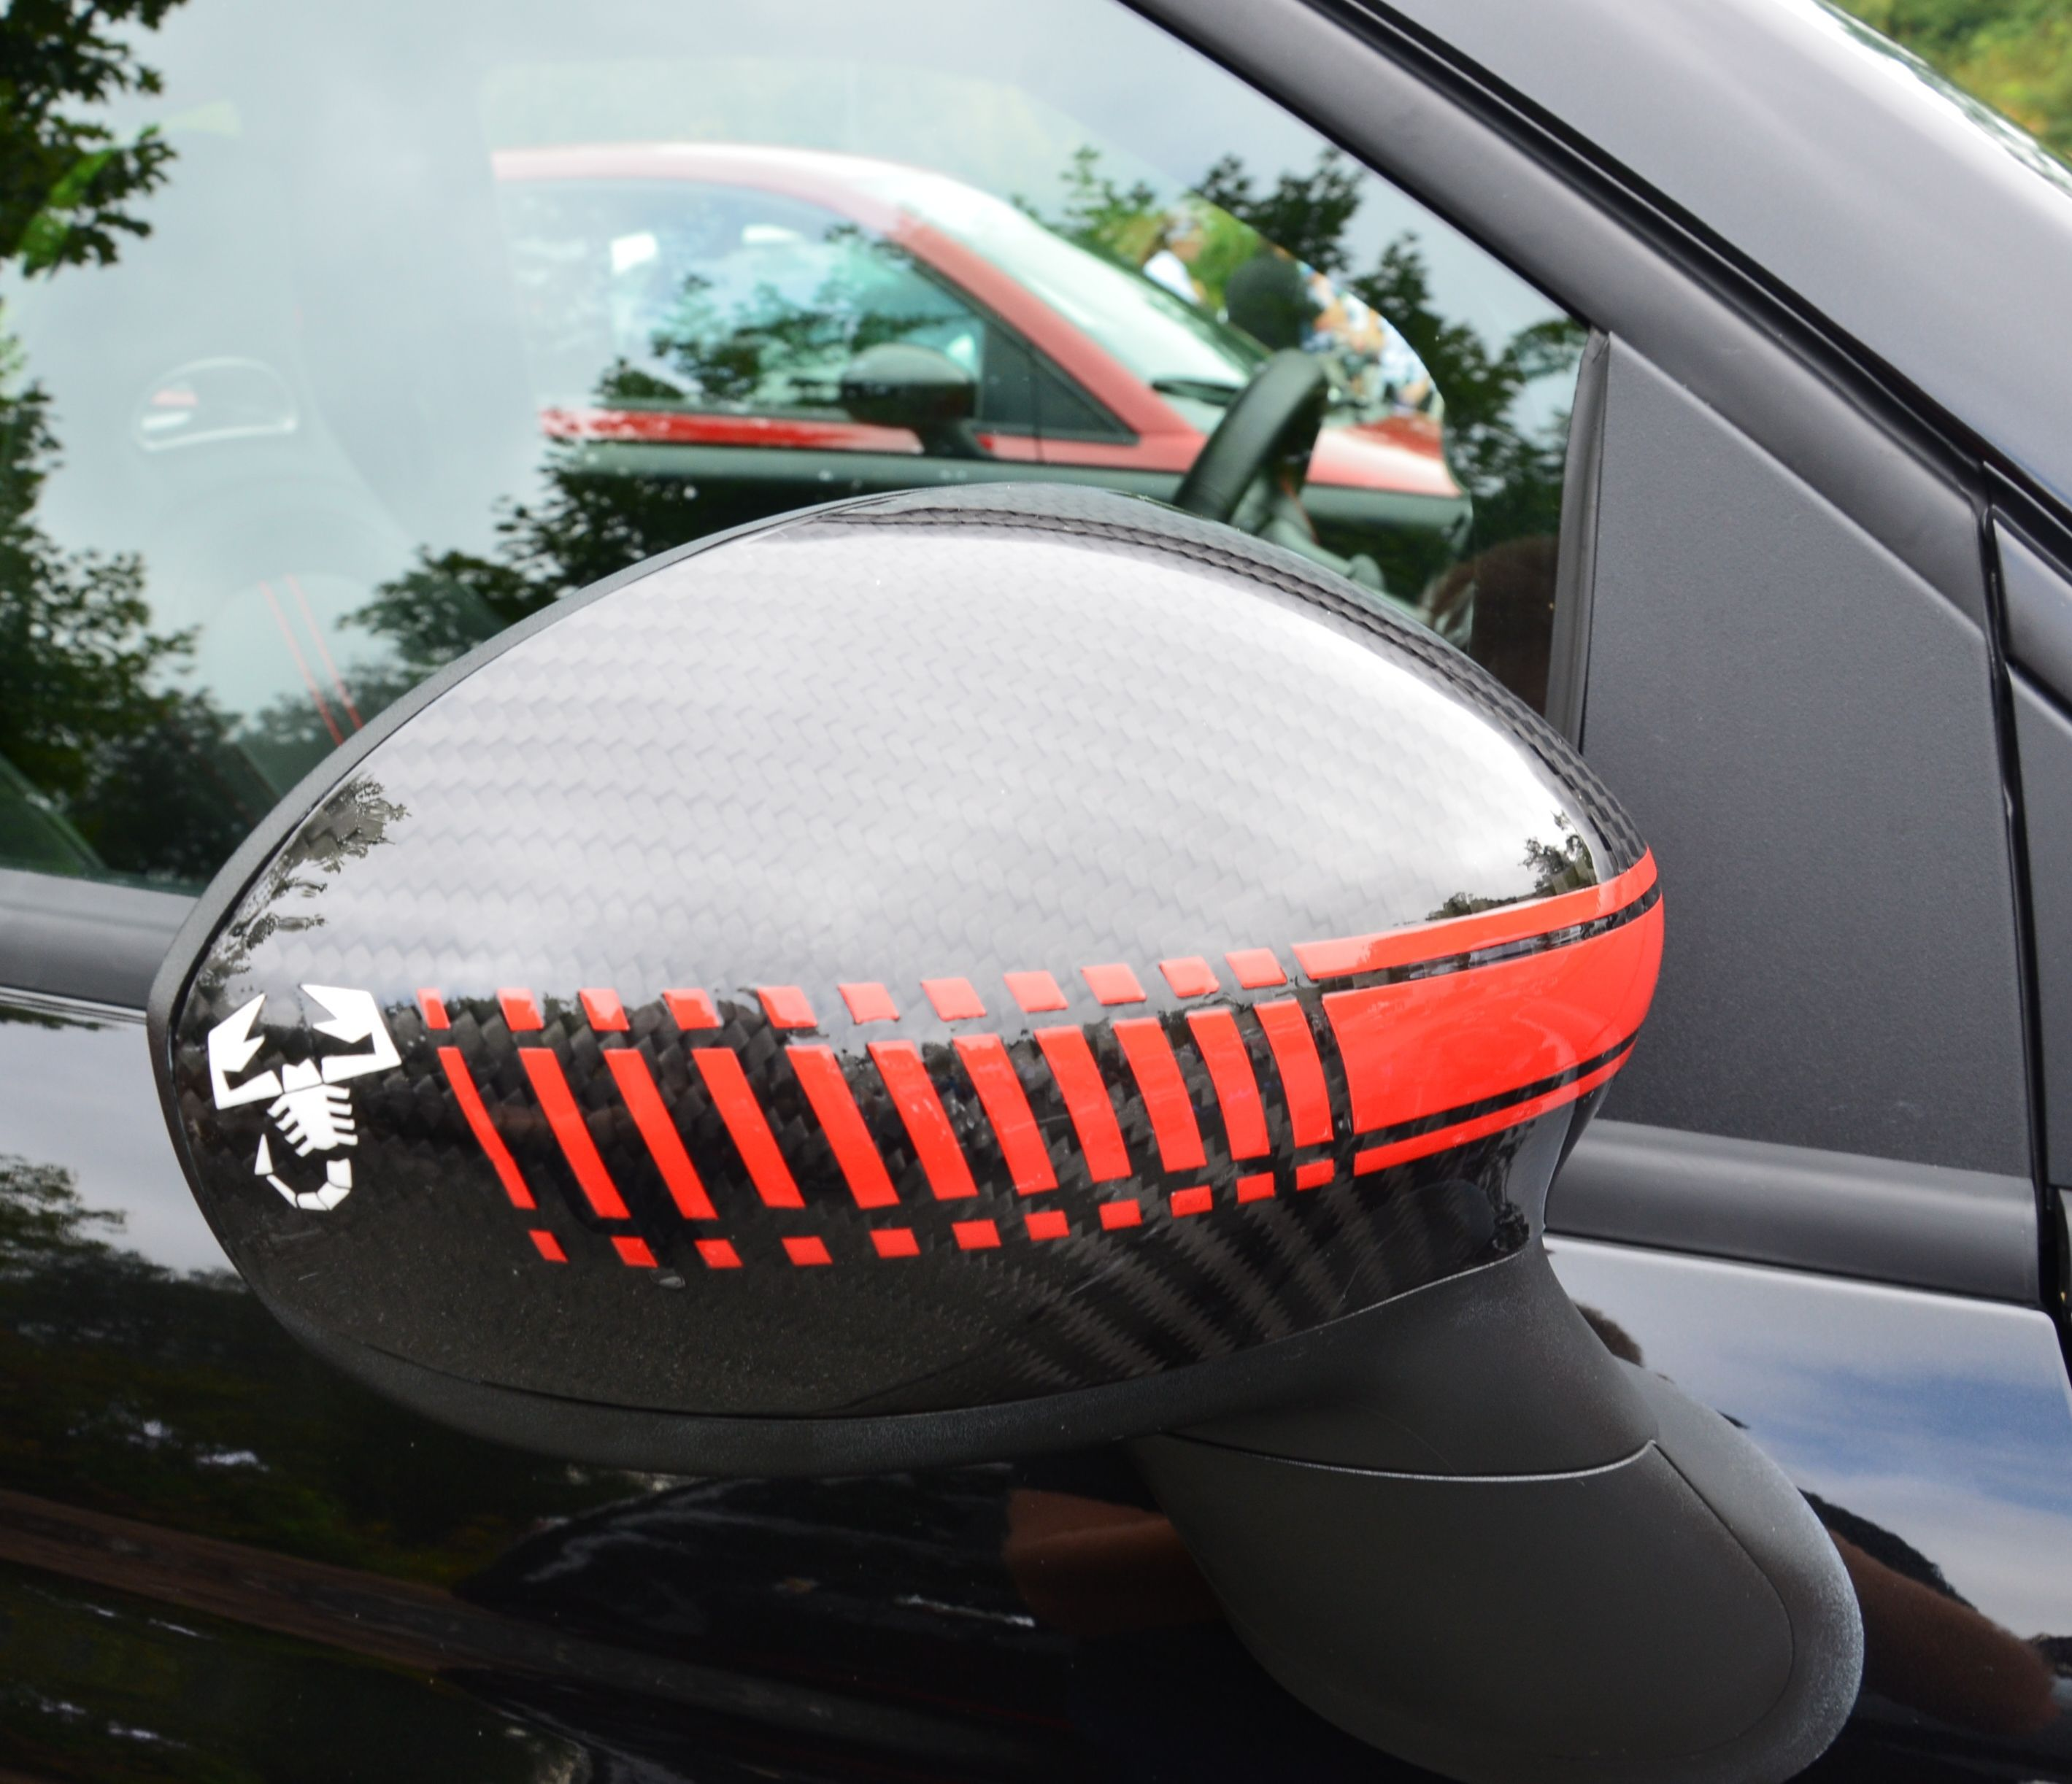 Carbon Fiber Mirror Covers From 500 MADNESS. Www